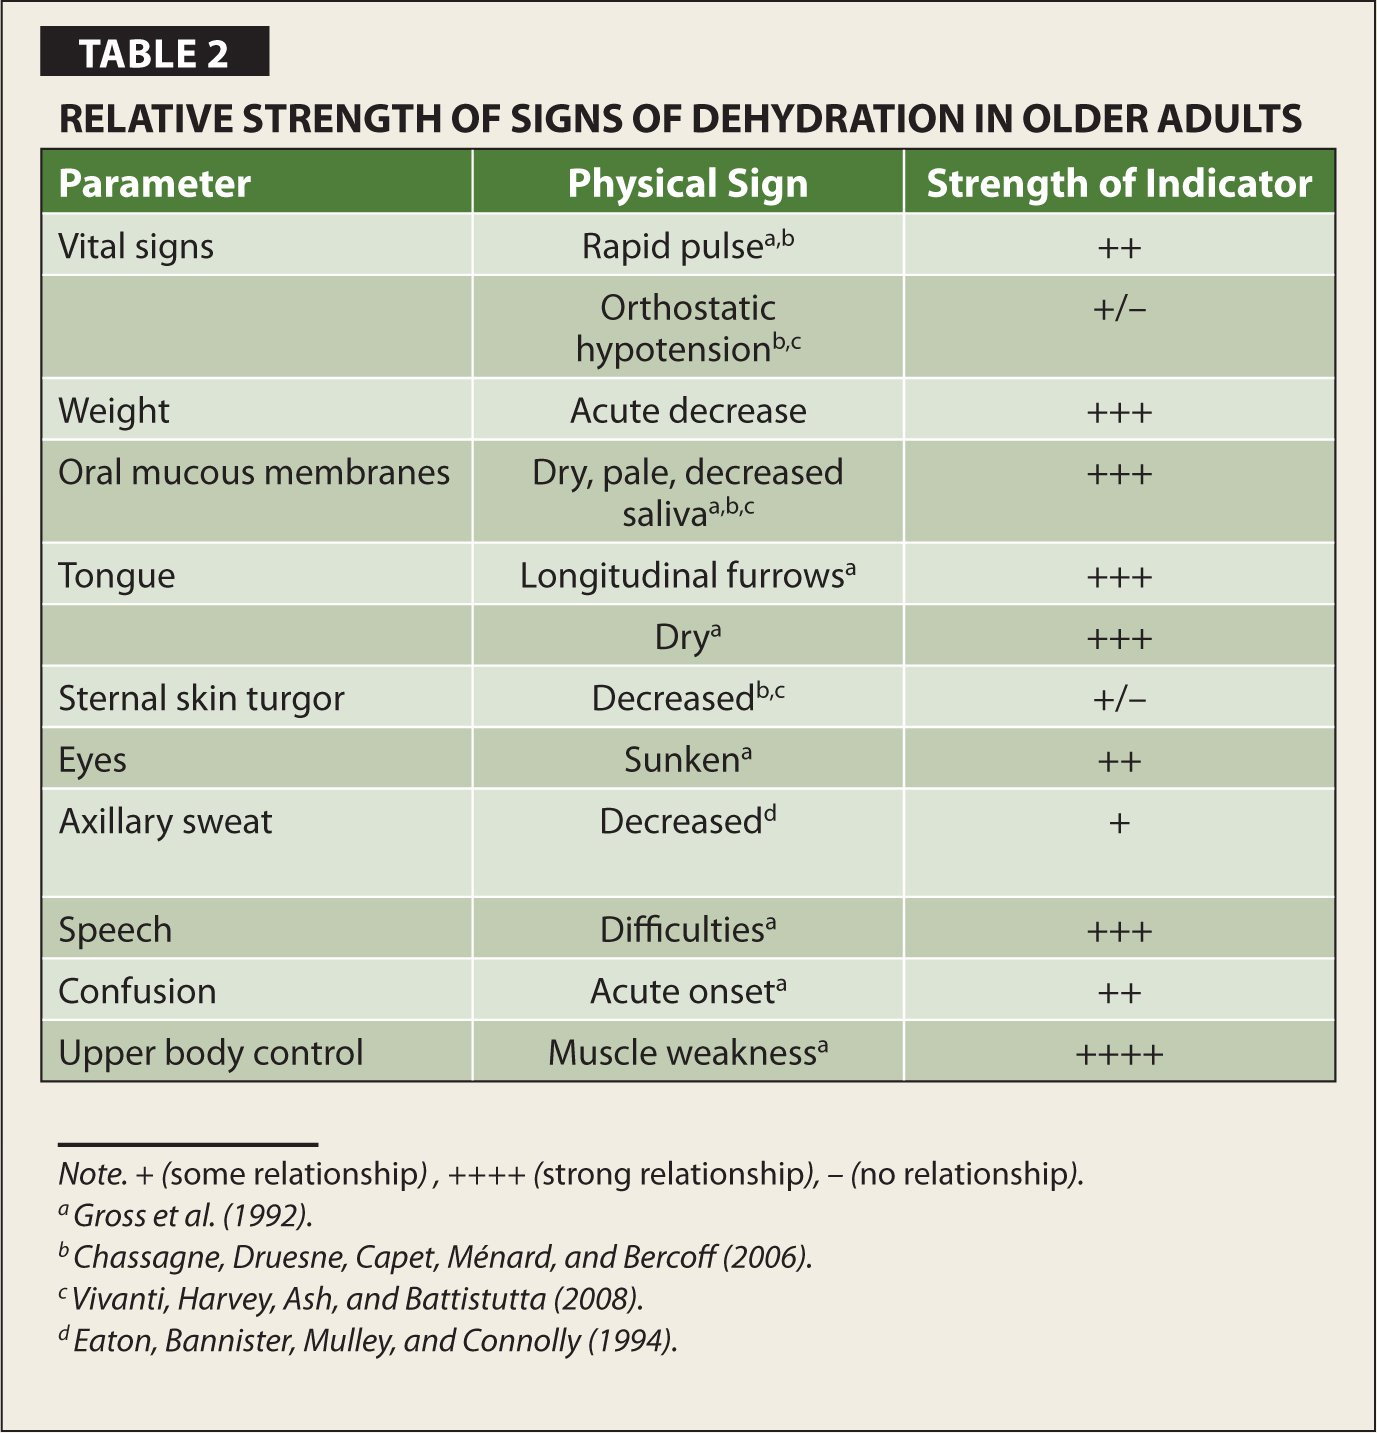 Relative Strength of Signs of Dehydration In Older Adults